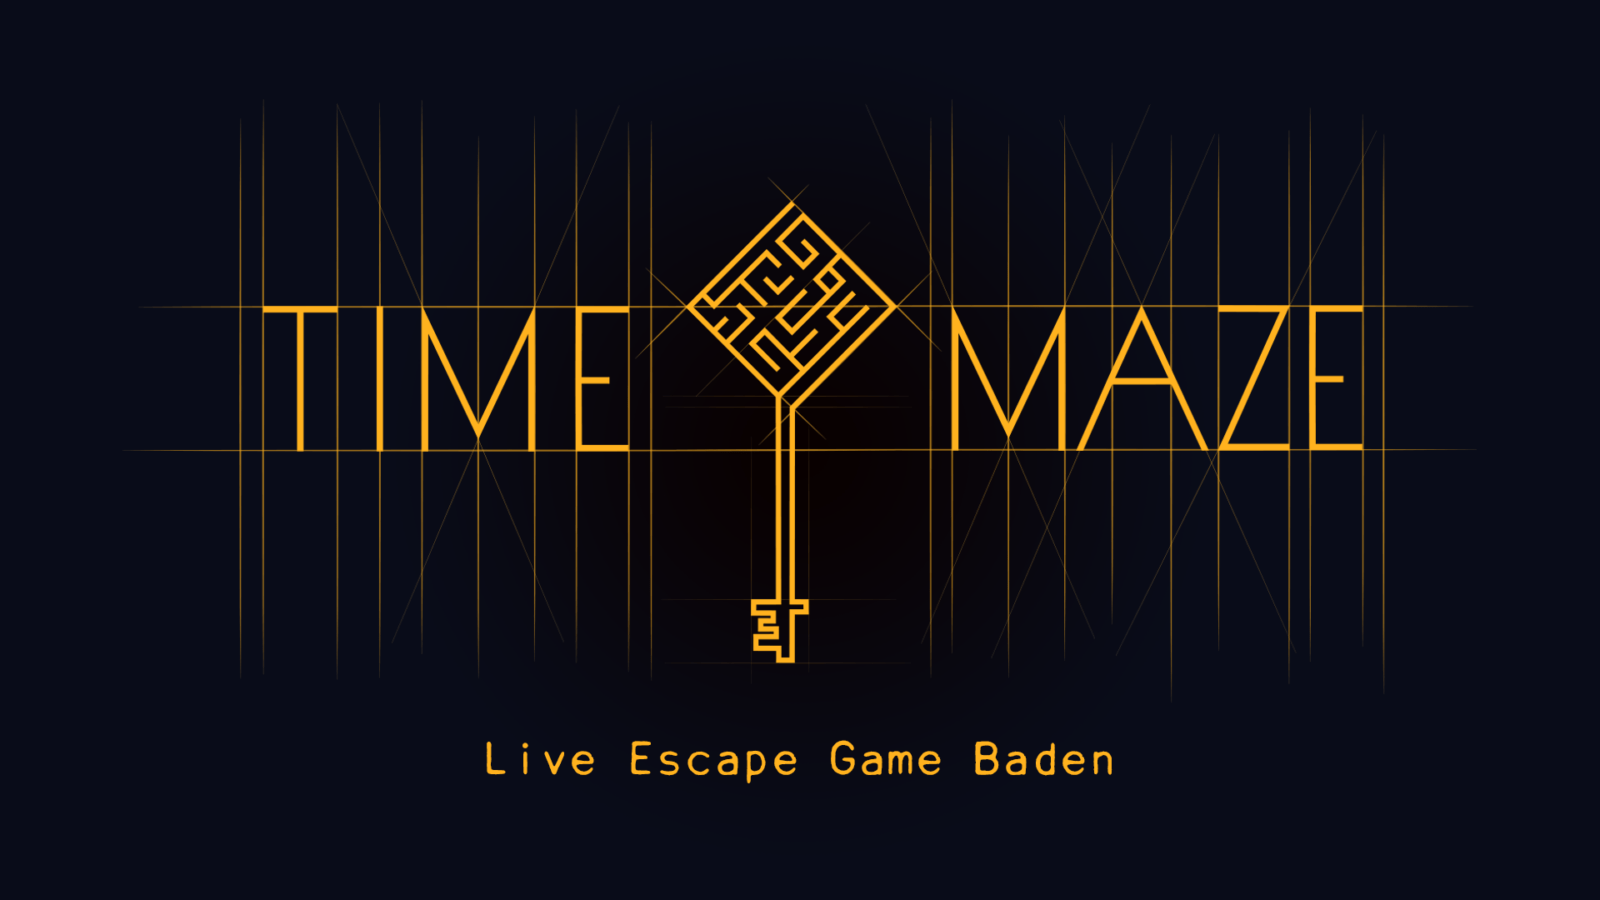 Time Maze - Live Escape Game and Adventure Rooms Baden, Zurich, Aargau, Beutezug 1847